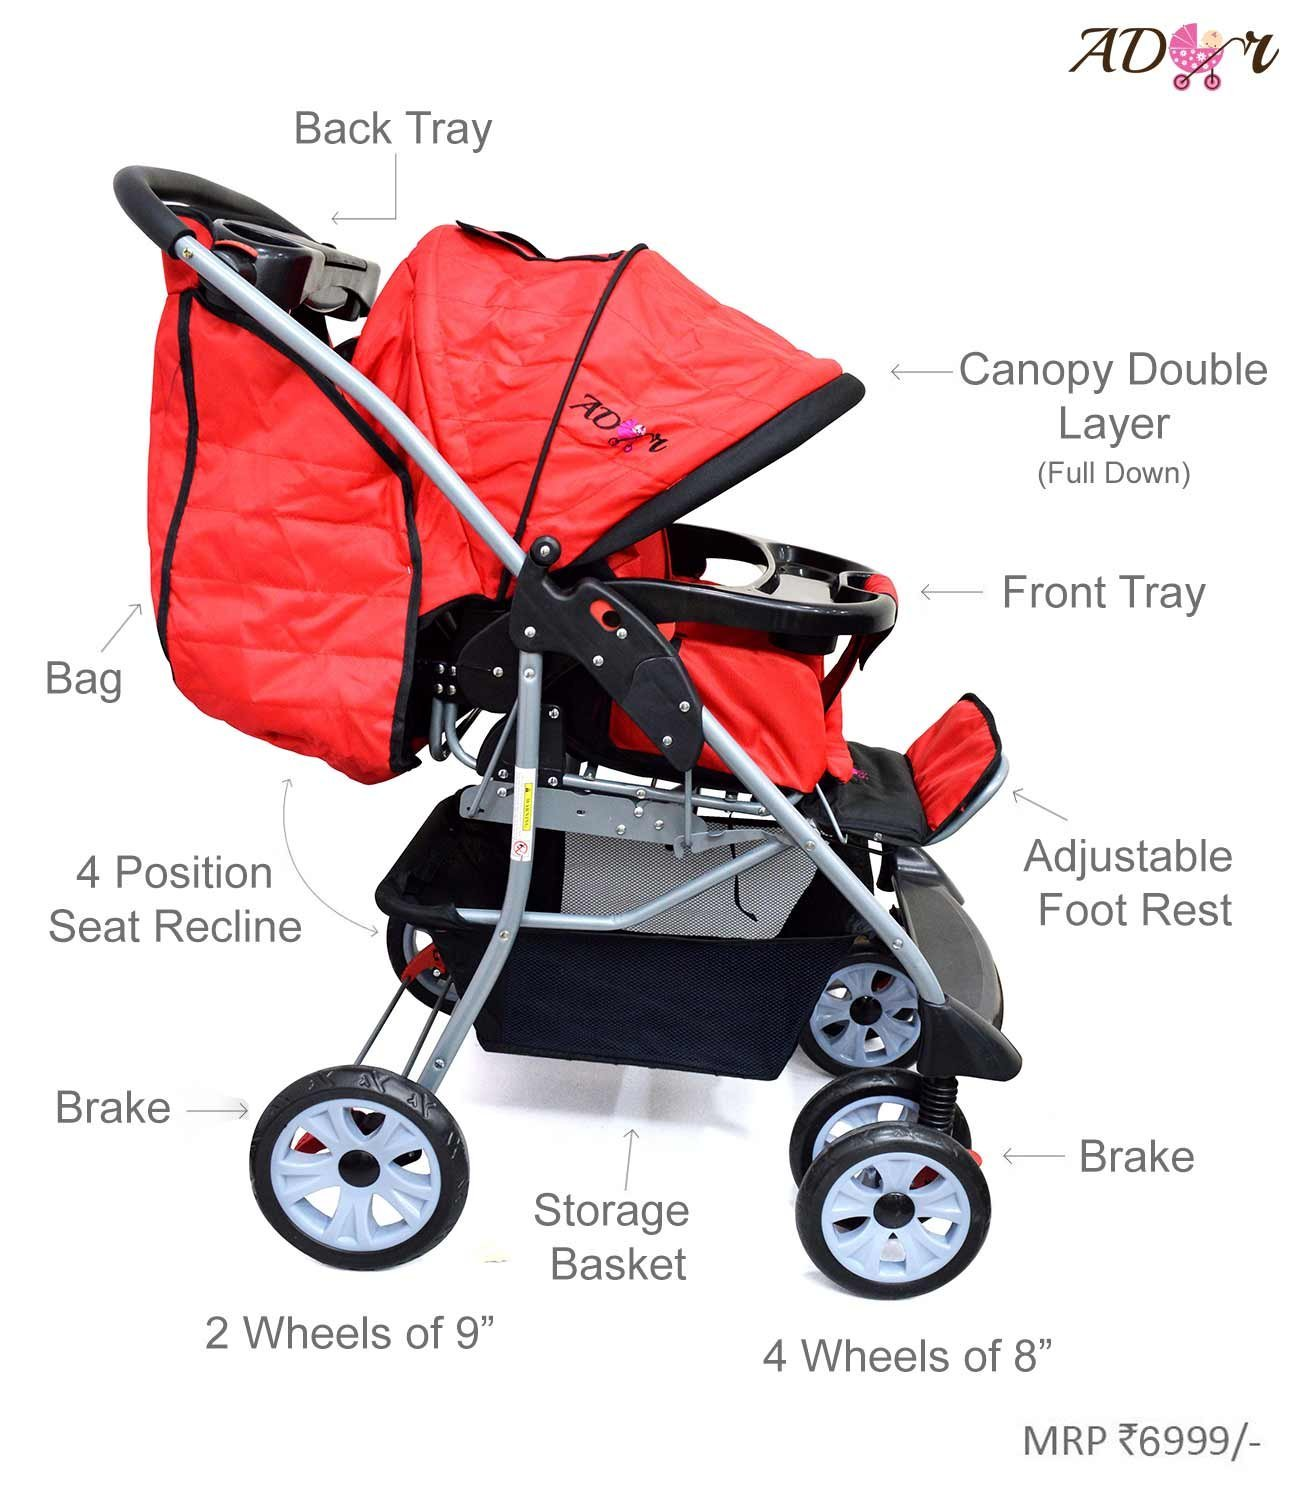 Toddler Stroller India Compare Buy Ador Luxe Baby Stroller 55 Red Online In India At Best Price Healthgenie In